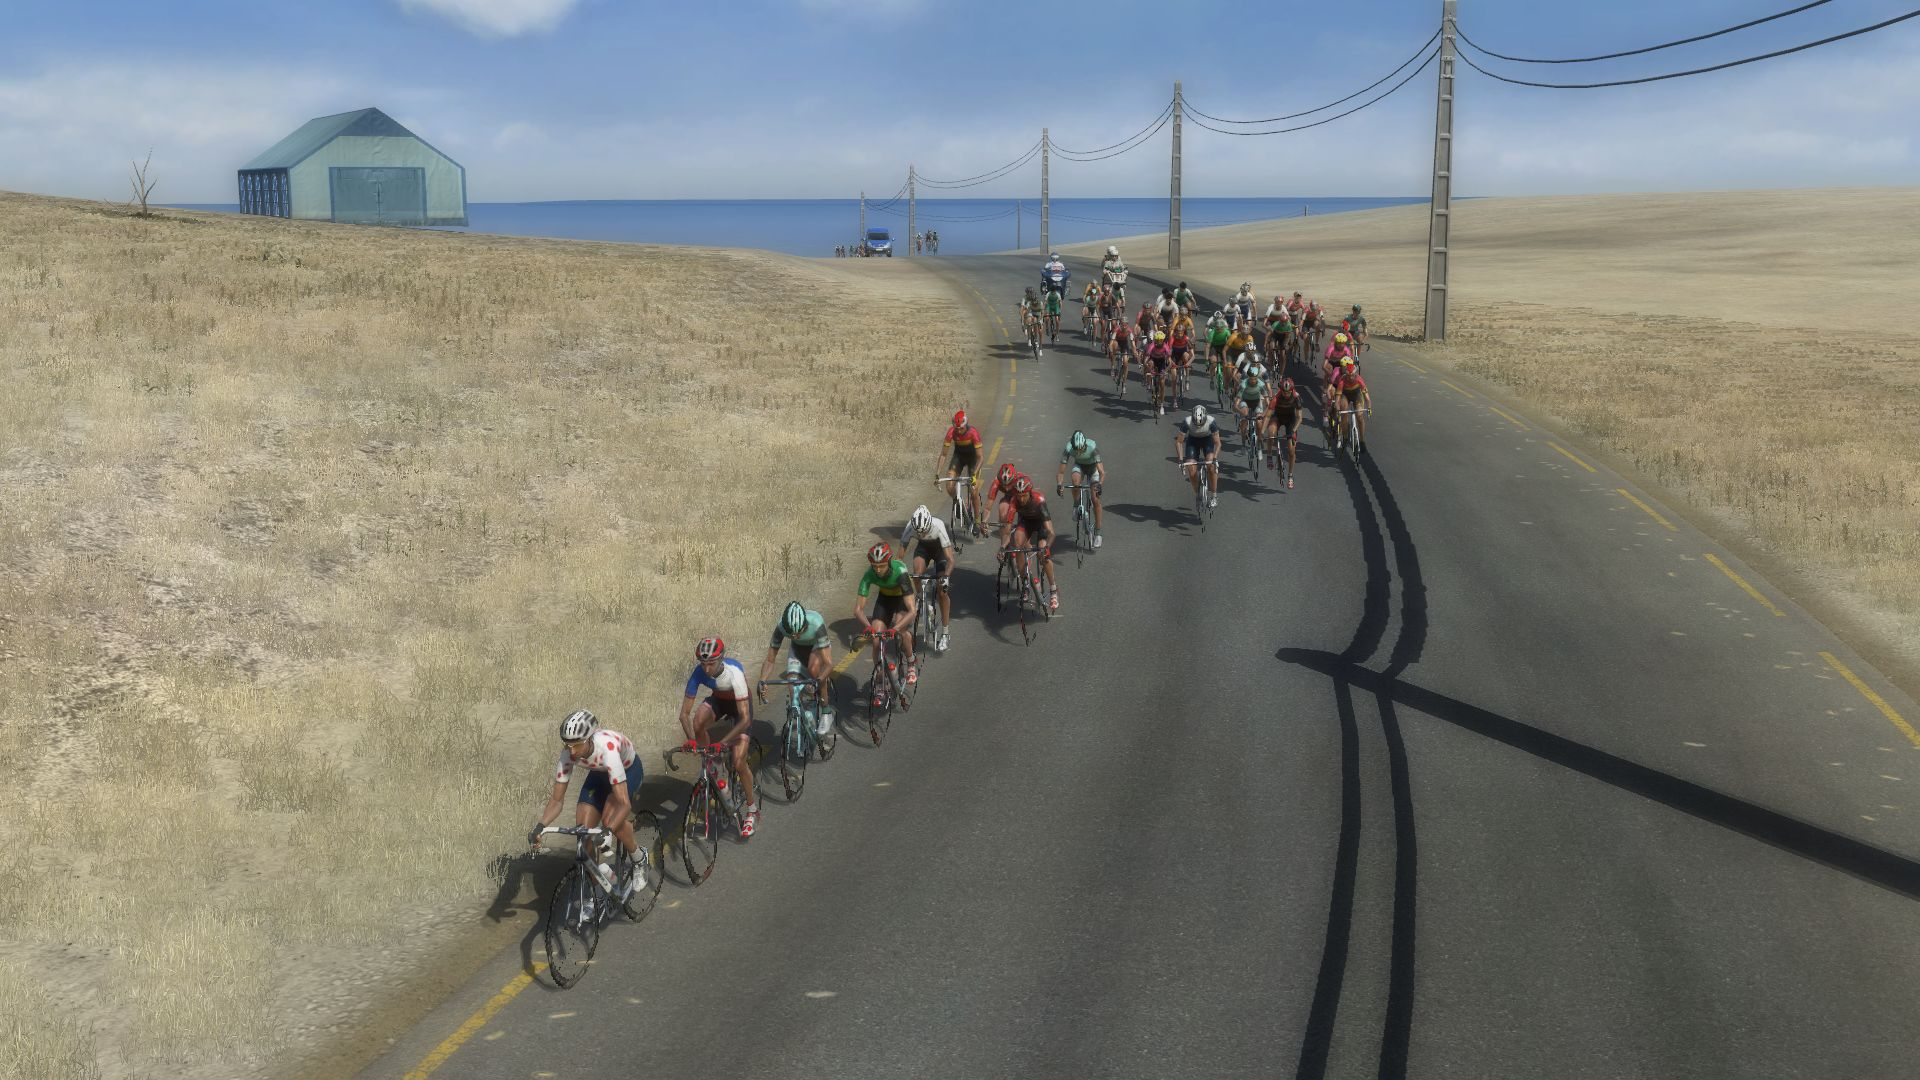 pcmdaily.com/images/mg/2019/Races/C2HC/Eritrea/TOES3%209.jpg